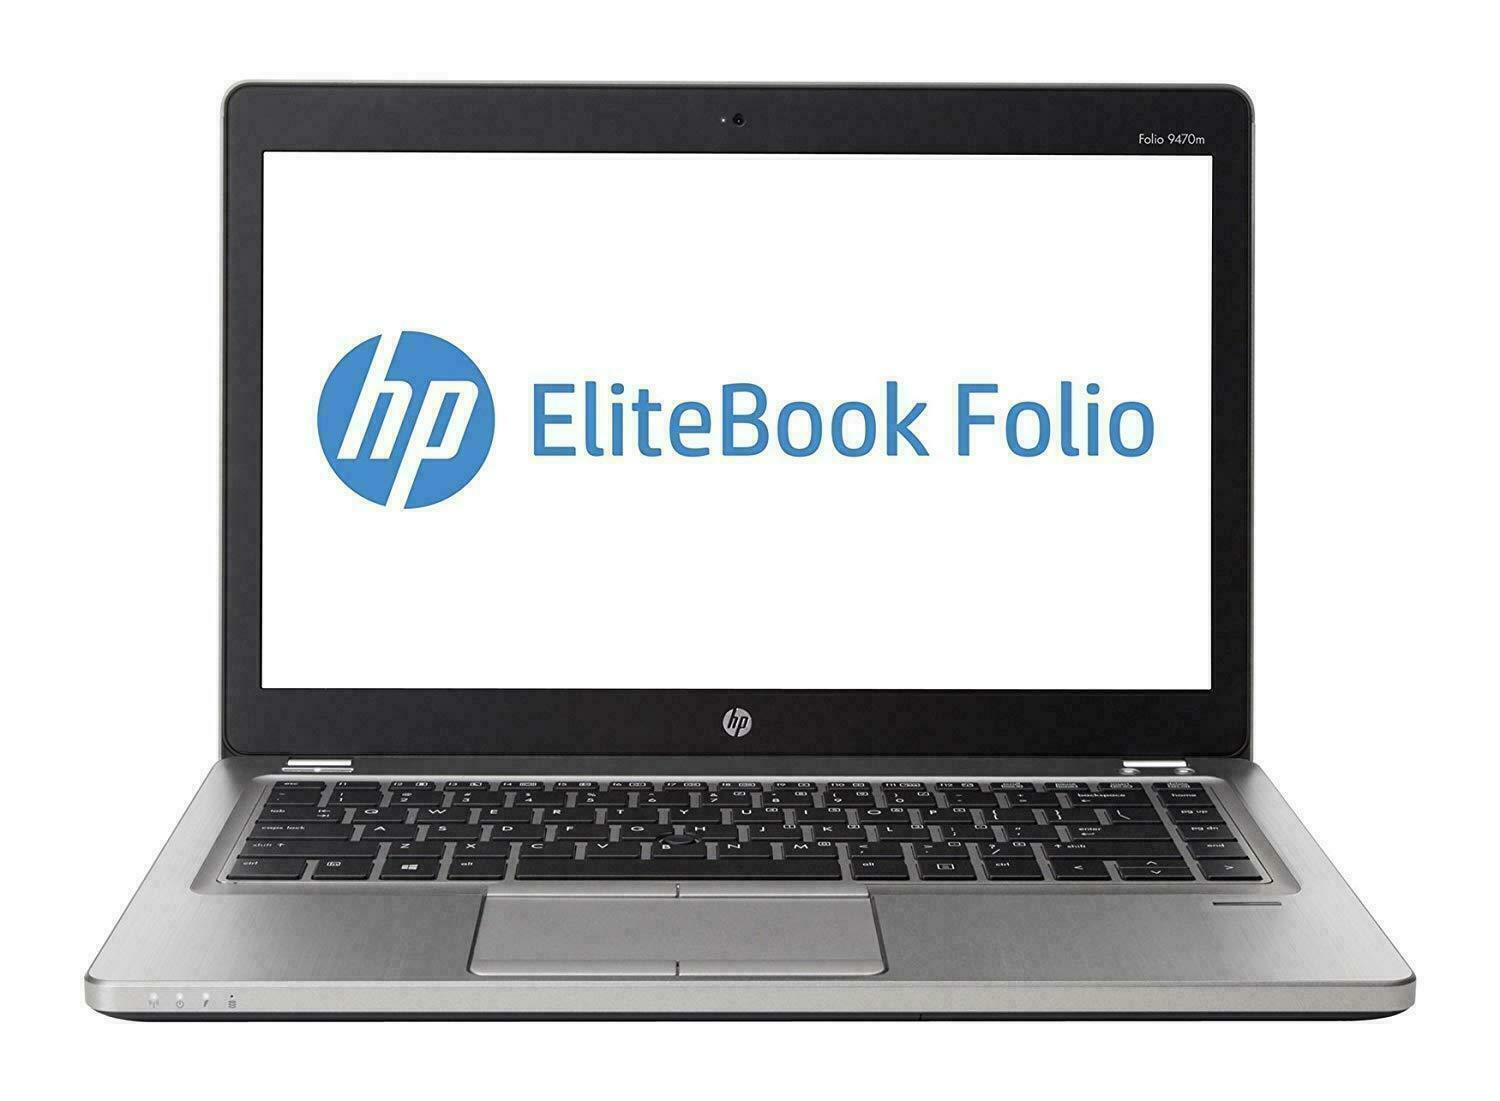 Laptop Windows - GREAT PRICE HP Folio 9480m Intel CORE i7-4600U 16GB 512GB SSD Windows 10 14""